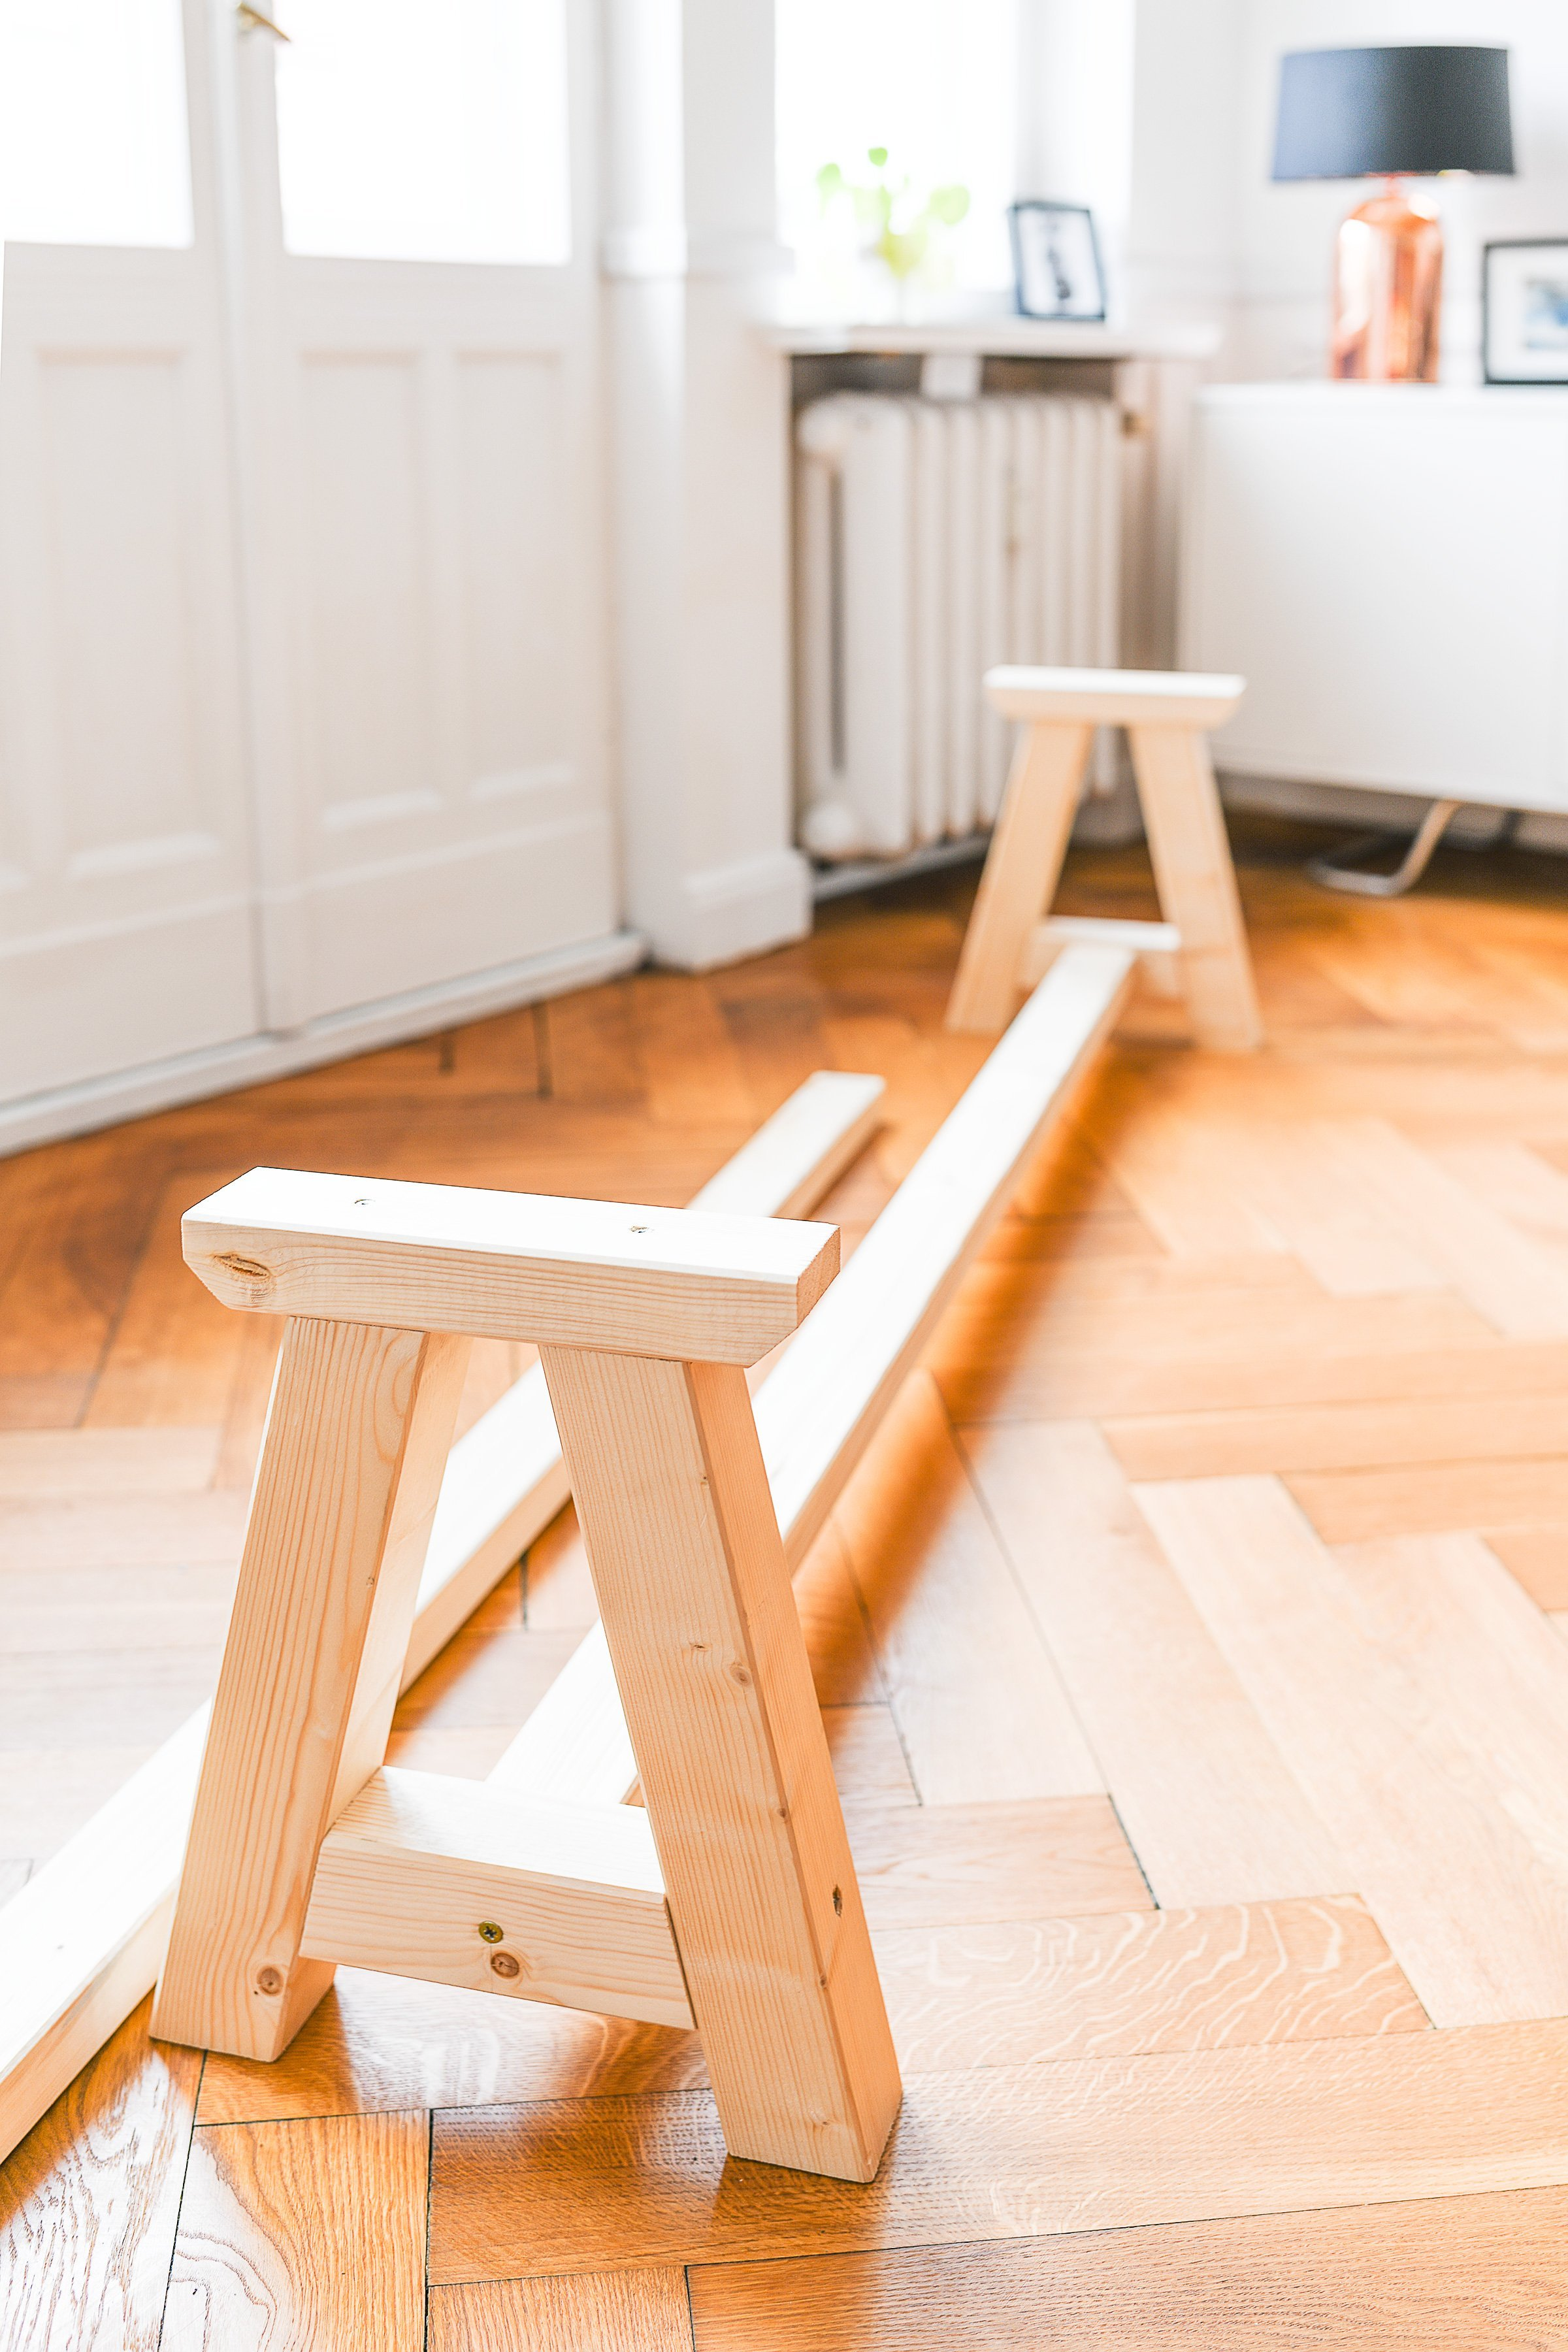 DIY Dining Room Bench - Cutting | Little House On The Corner